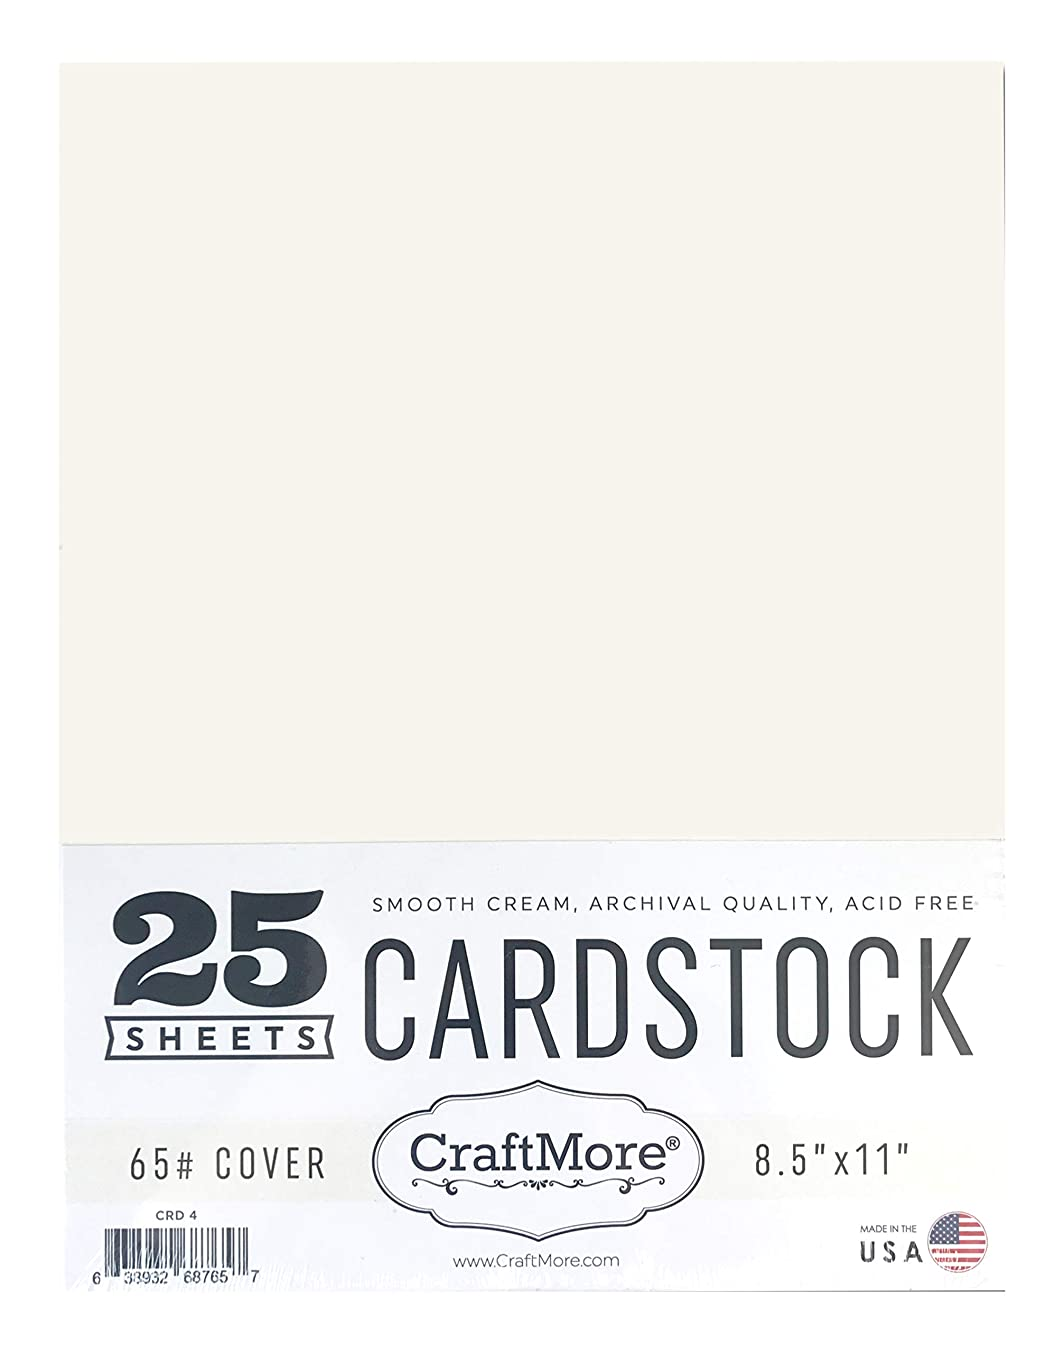 CraftMore Cardstock Paper Value Pack, 8.5